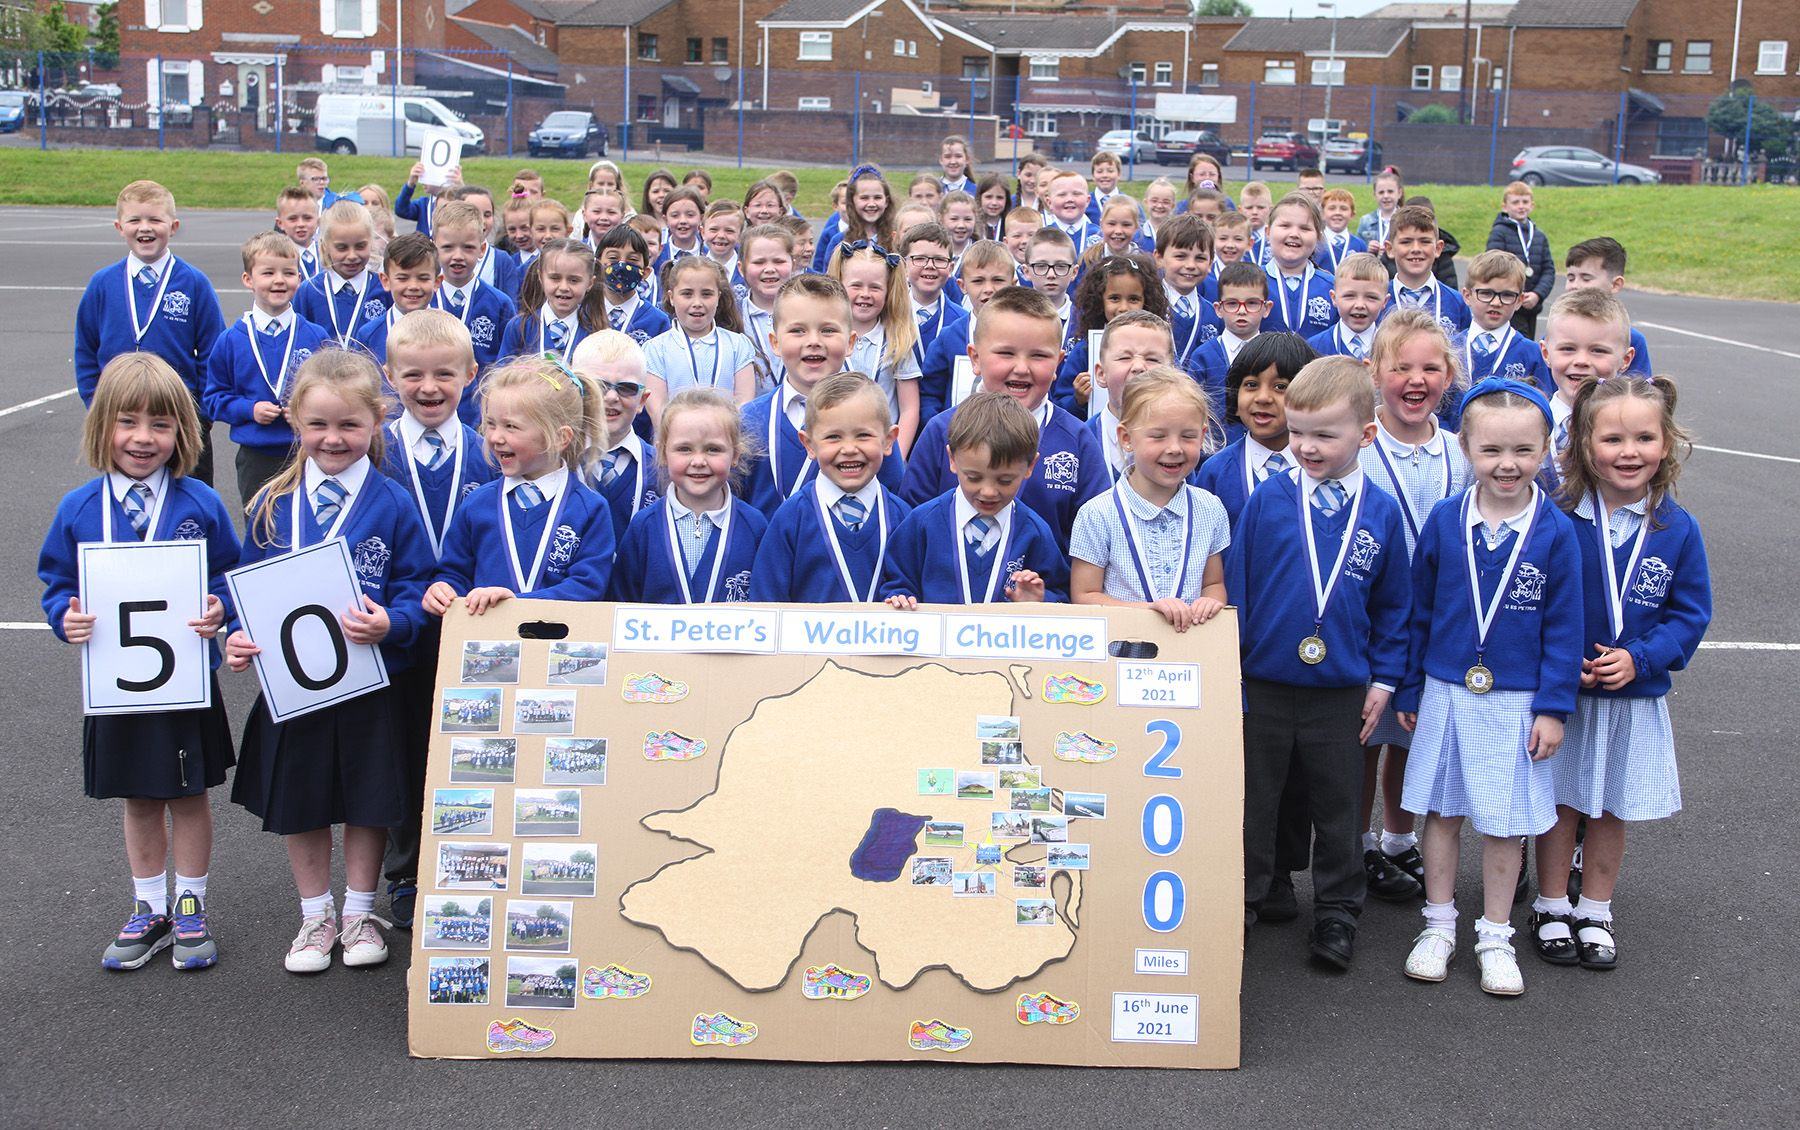 GETTING ACTIVE: The challenge saw pupils walk a combined total of 200 miles around the yard while learning about the world around them